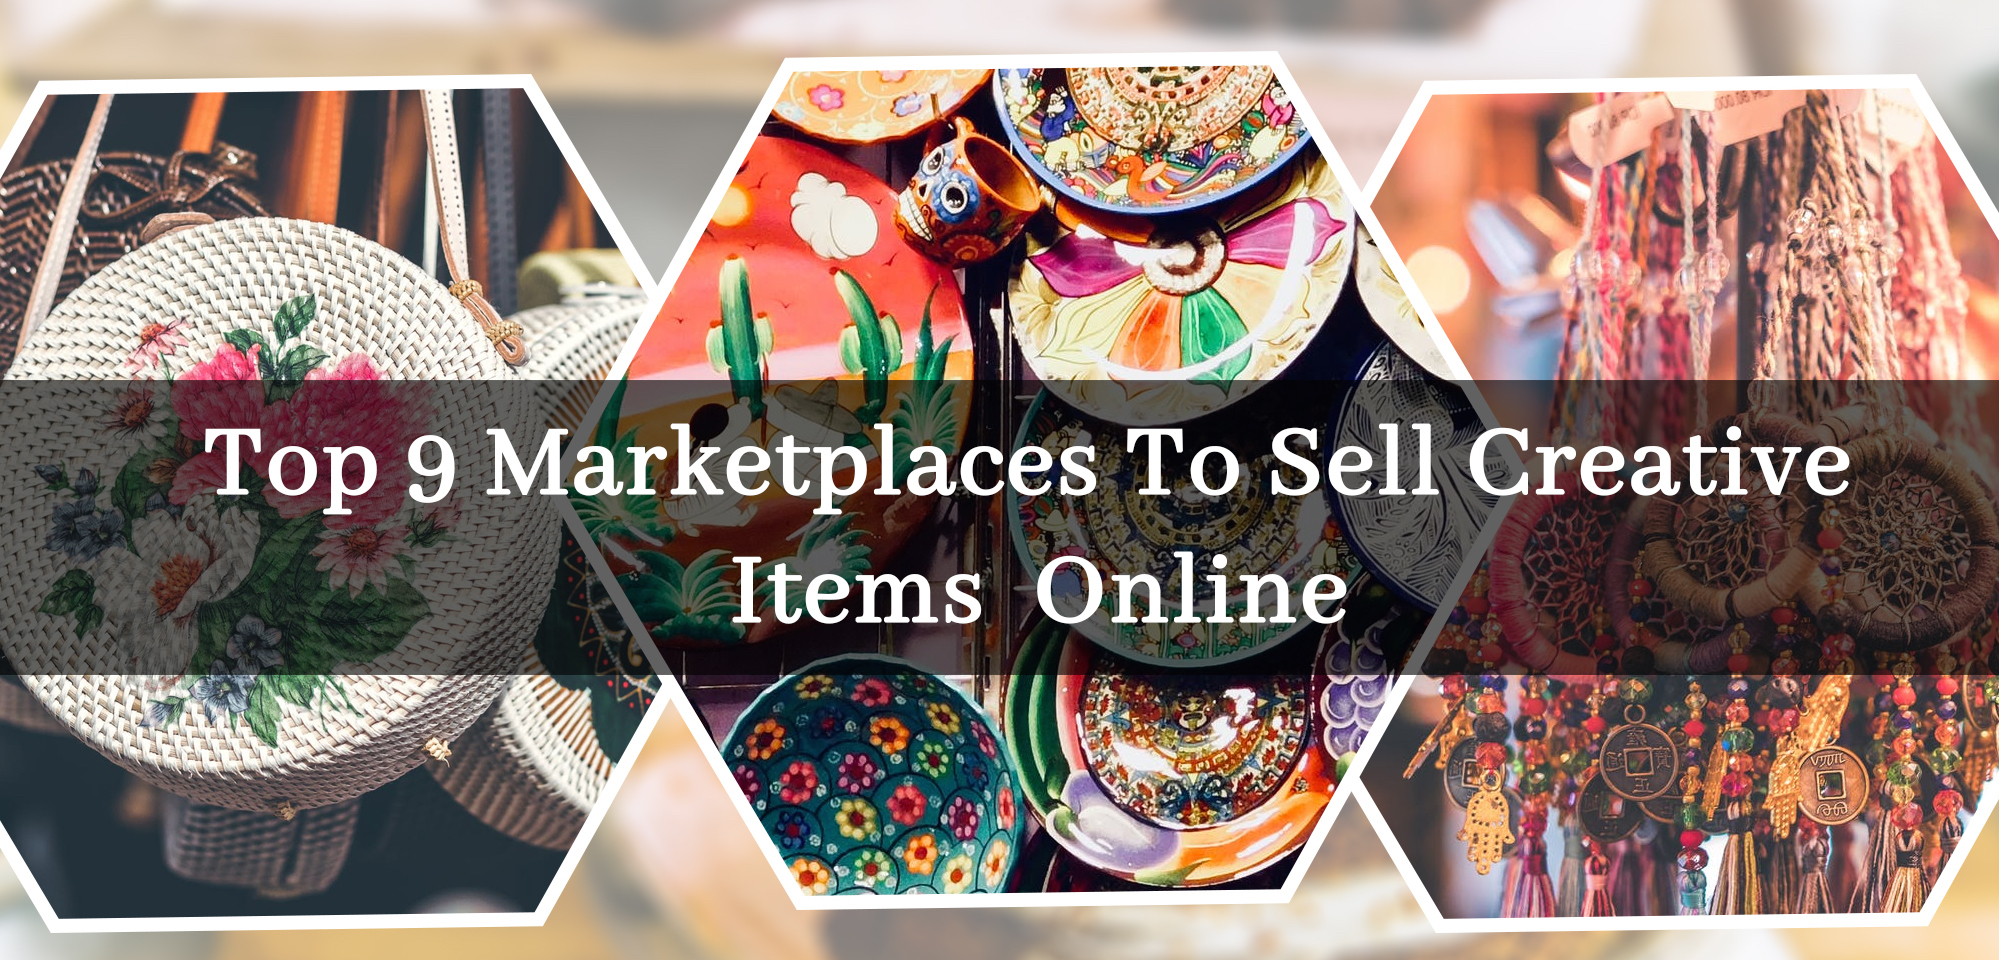 Top 9 Marketplaces to sell Creative items online in India